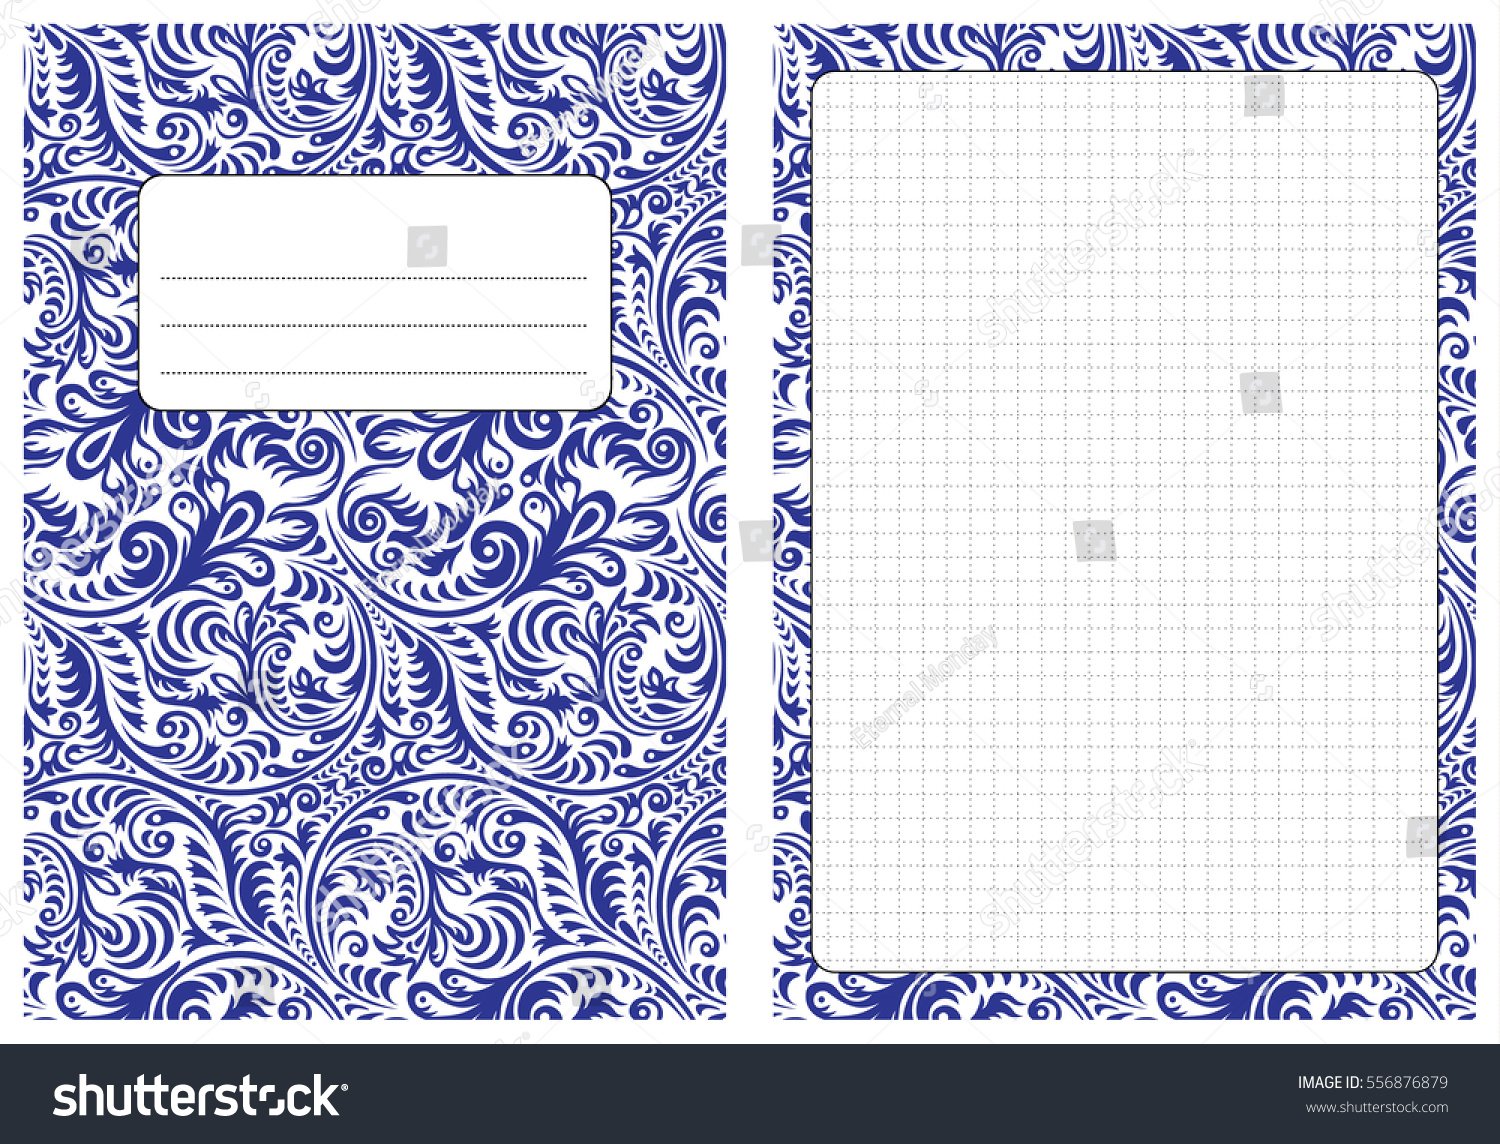 It's just a graphic of Printable Scrapbook Pages intended for summer